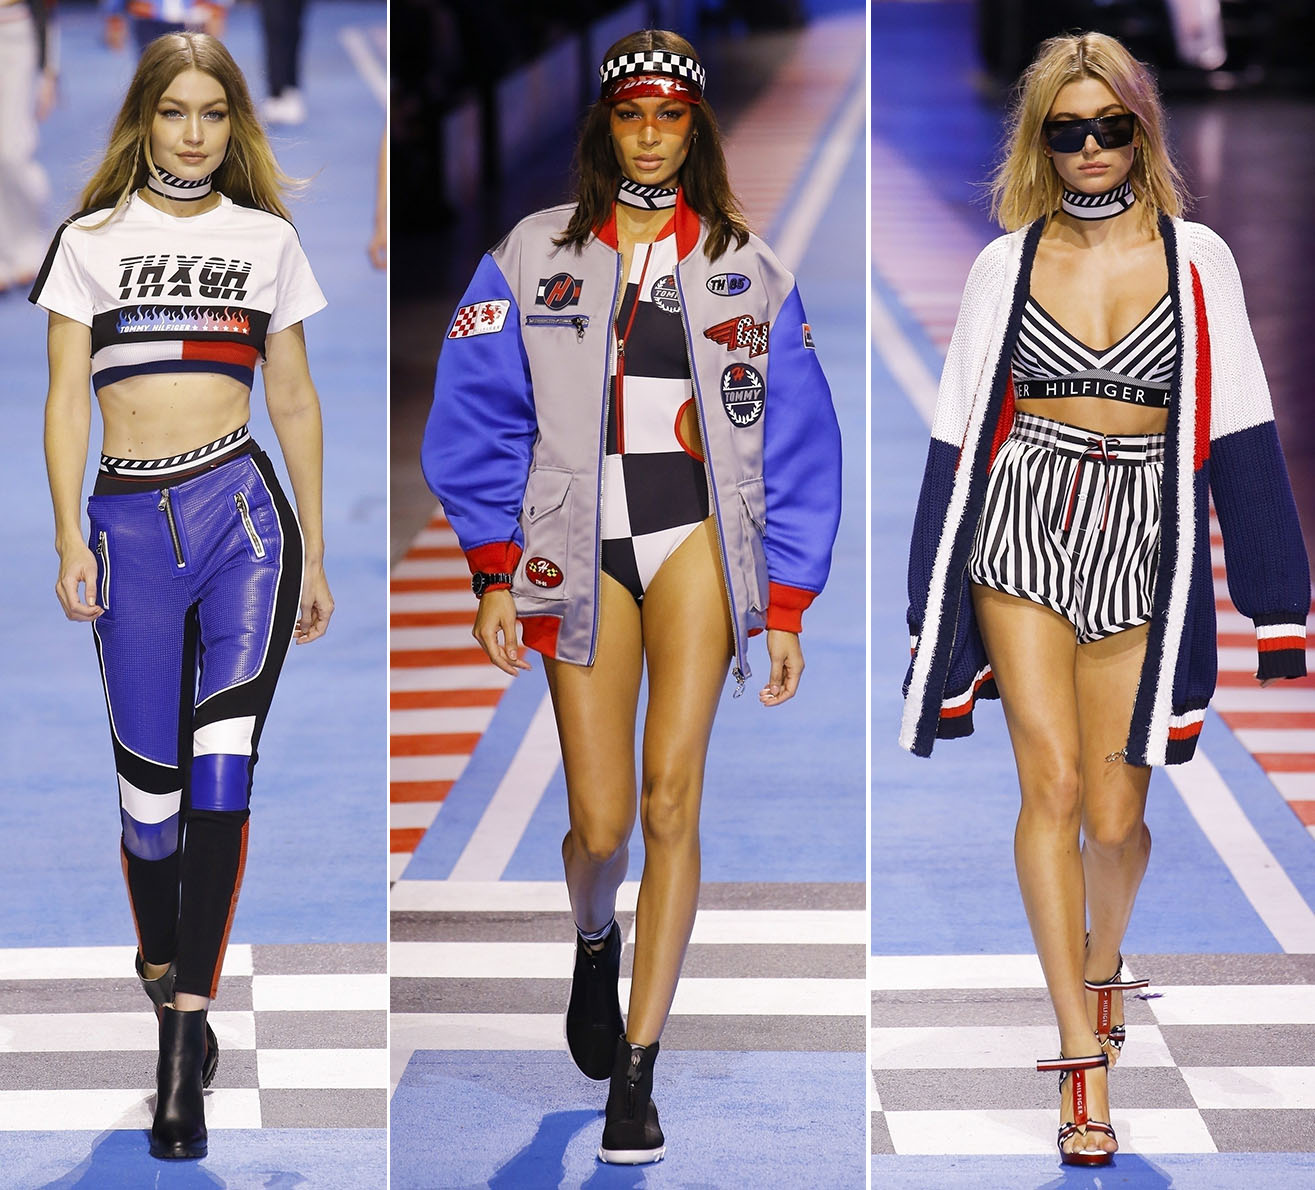 Gigi Hadid, Joan Smalls, Bella Hadid at The Tommy Hilfiger fashion show in Milan